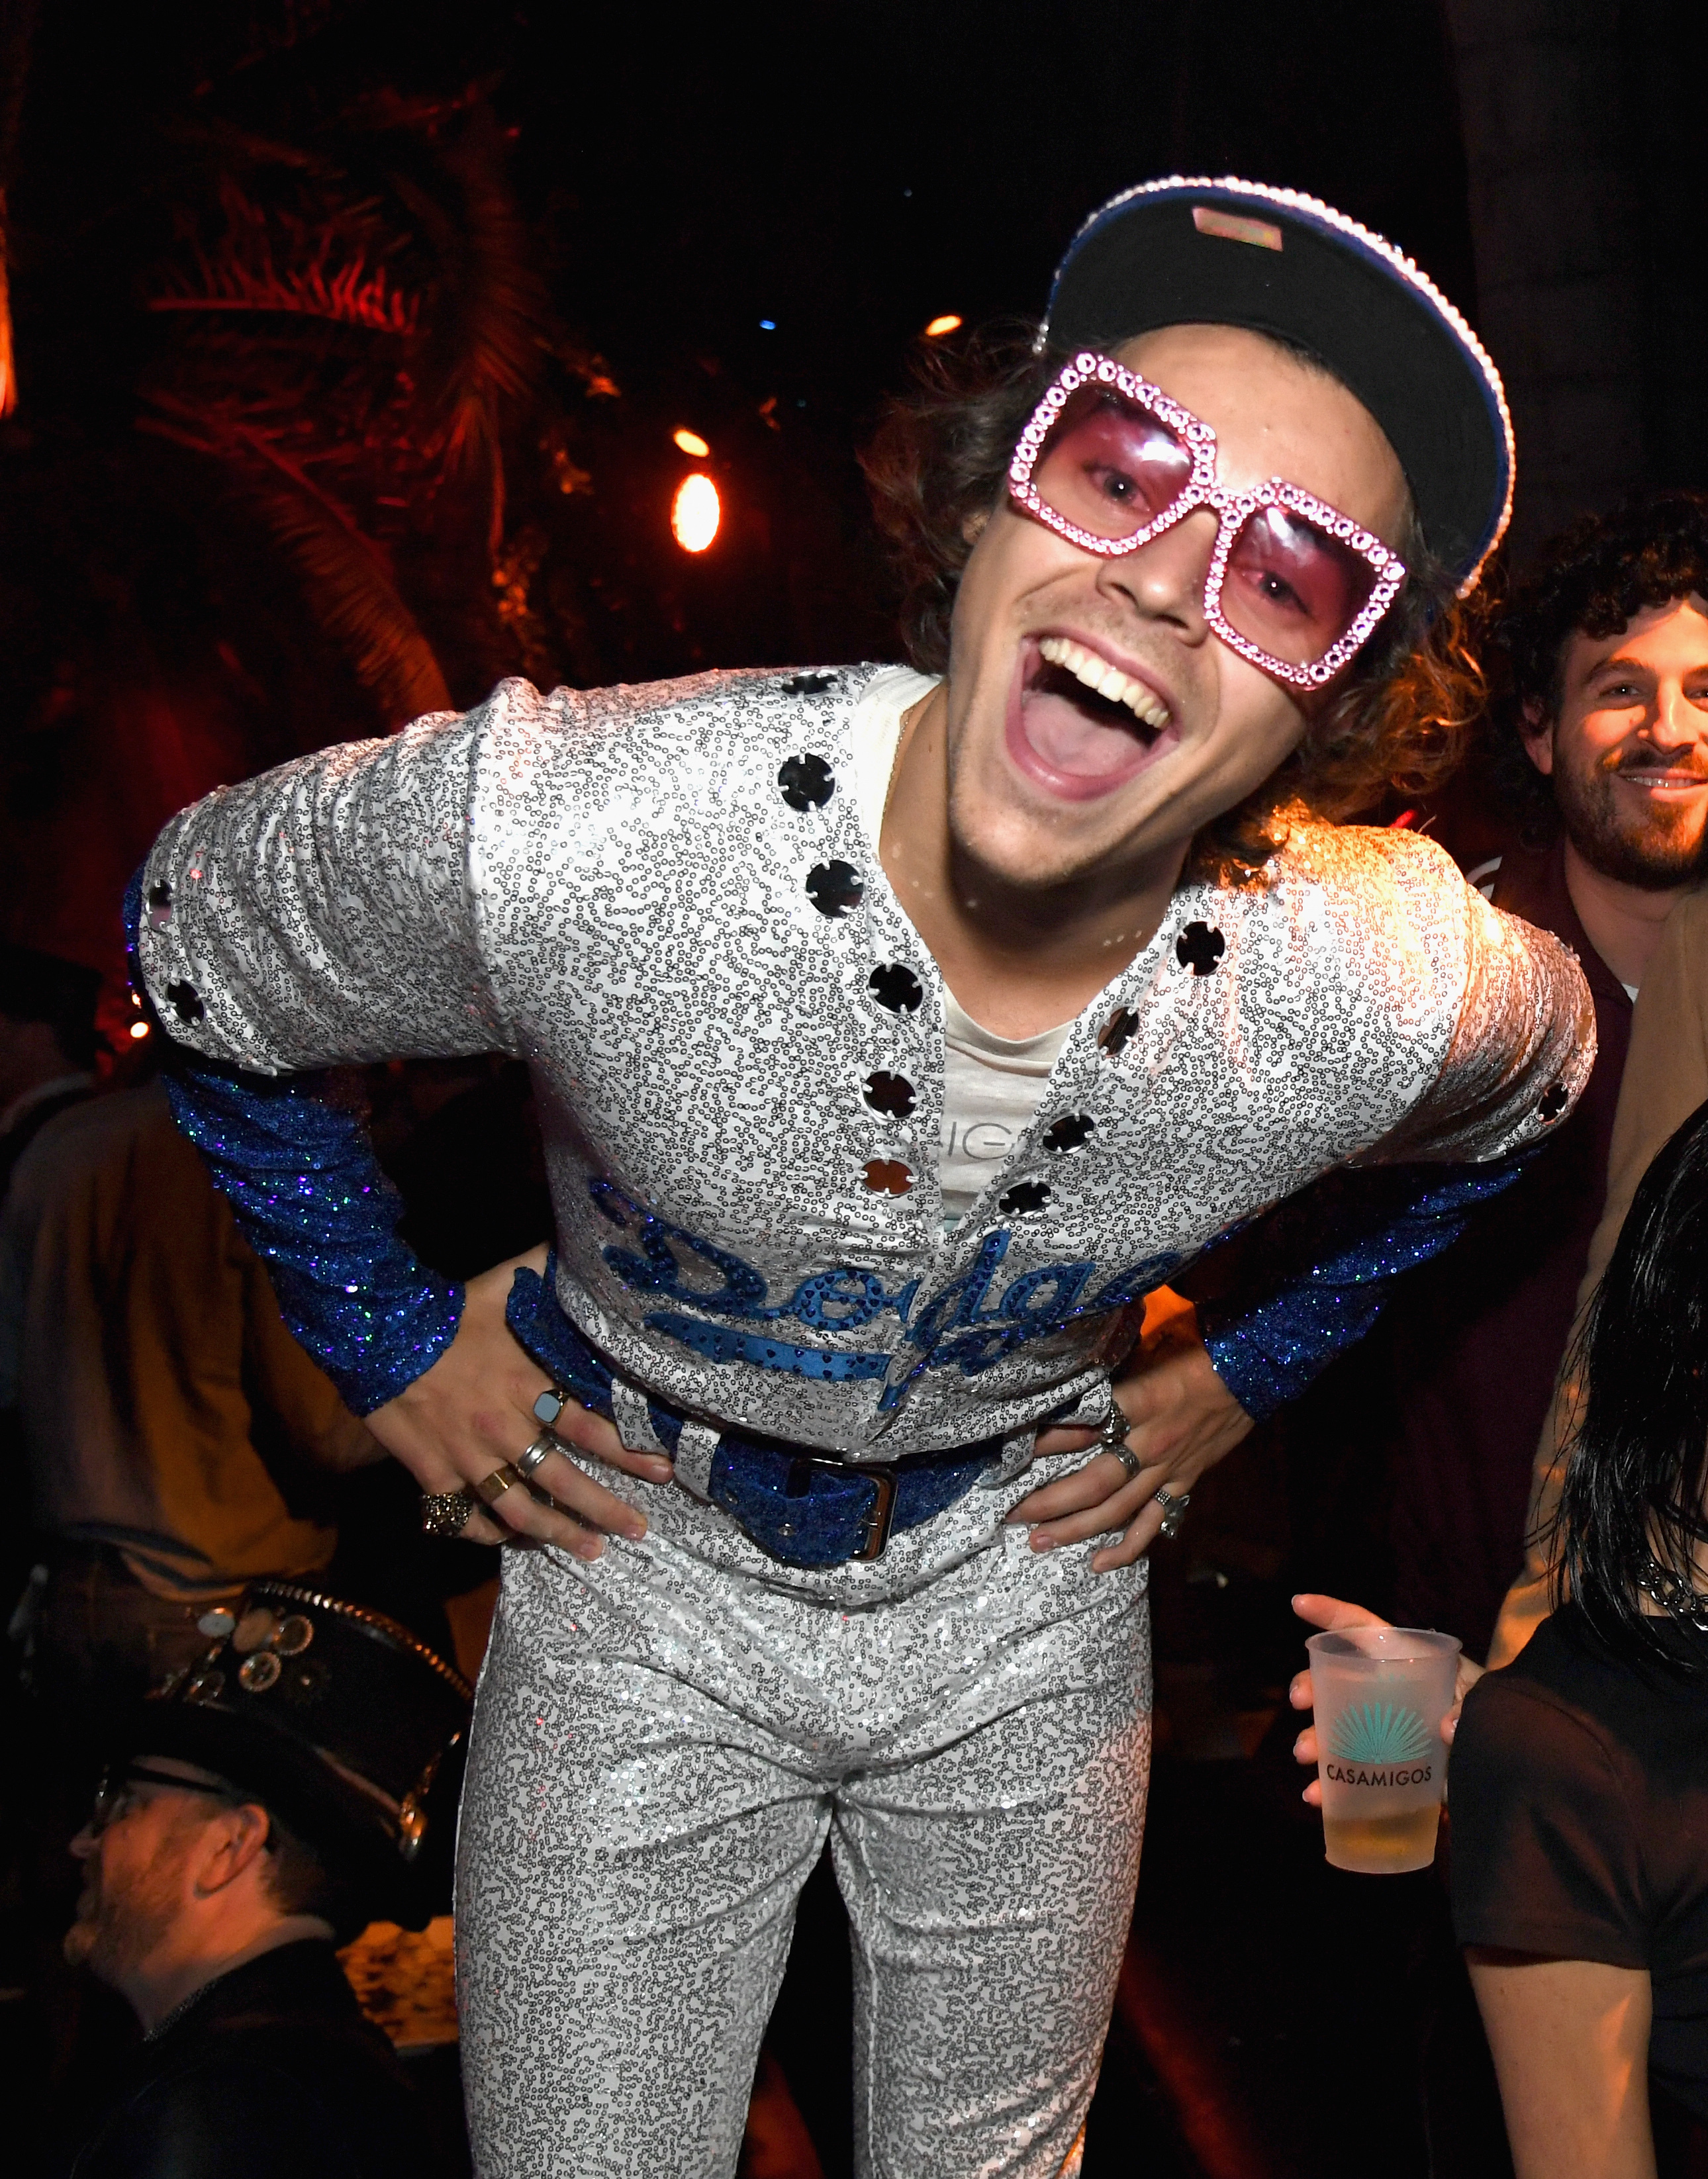 Harry Styles showed his support for the Dodgers baseball team for the Casamigos Halloween party in Los Angeles, Calif., on Oct. 26, 2018.